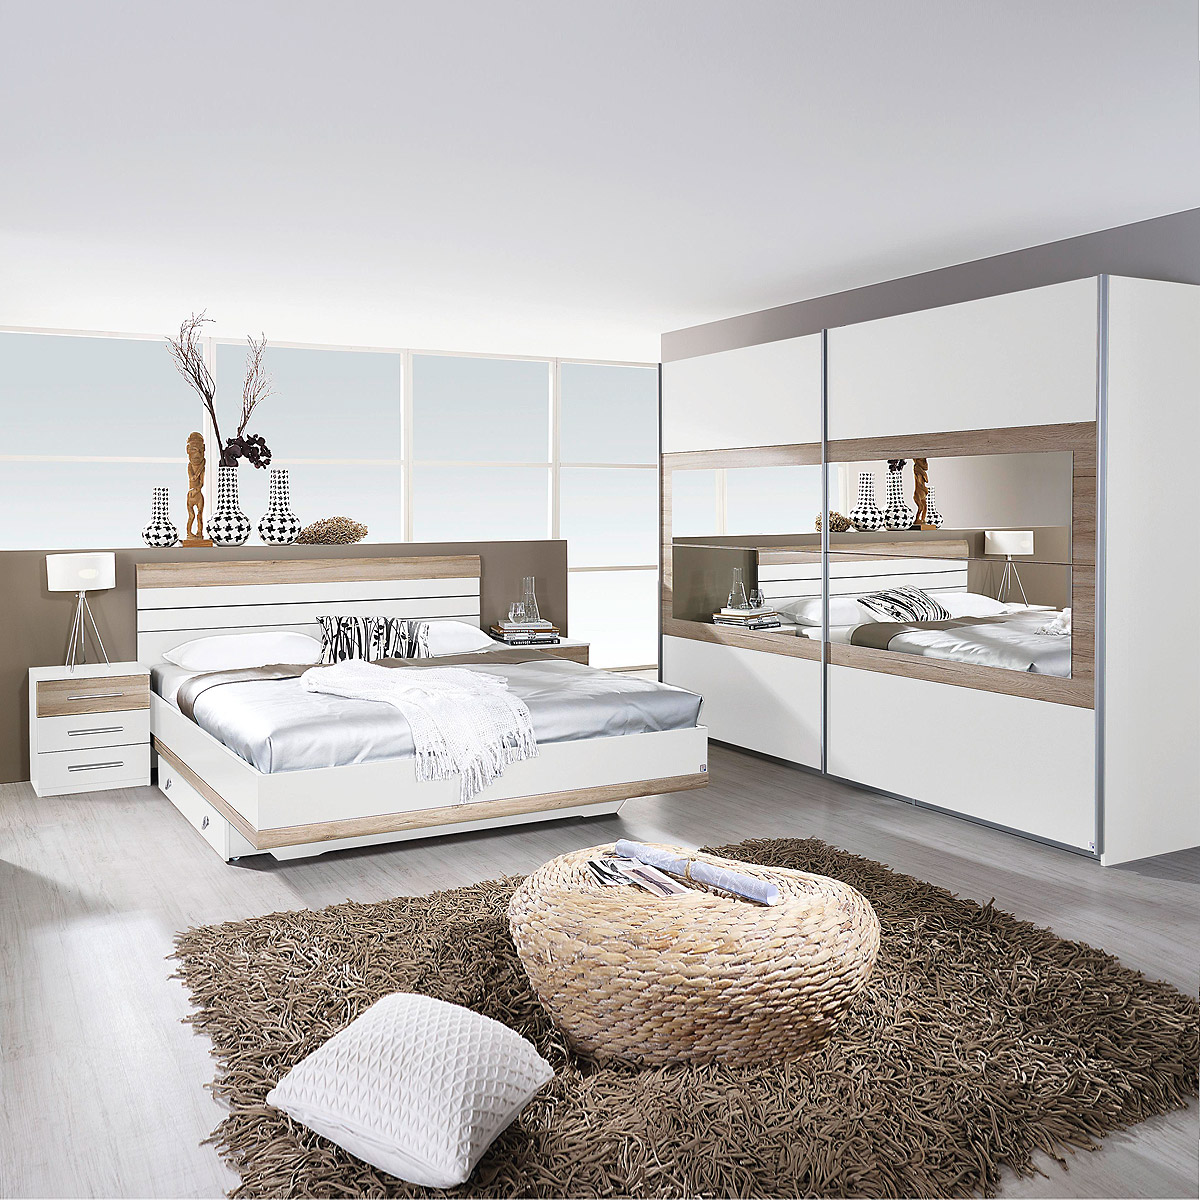 schlafzimmer set tarragona bett nakos kleiderschrank wei eiche sanremo hell 180 ebay. Black Bedroom Furniture Sets. Home Design Ideas